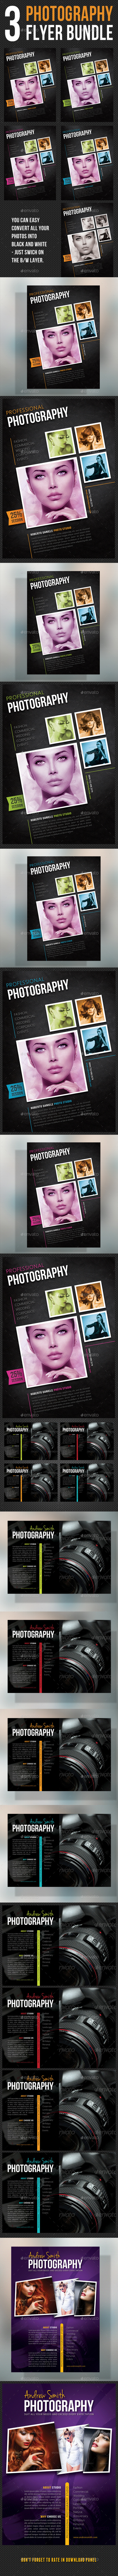 3 in 1 Photography Multipurpose Flyer Bundle 05 - Corporate Flyers